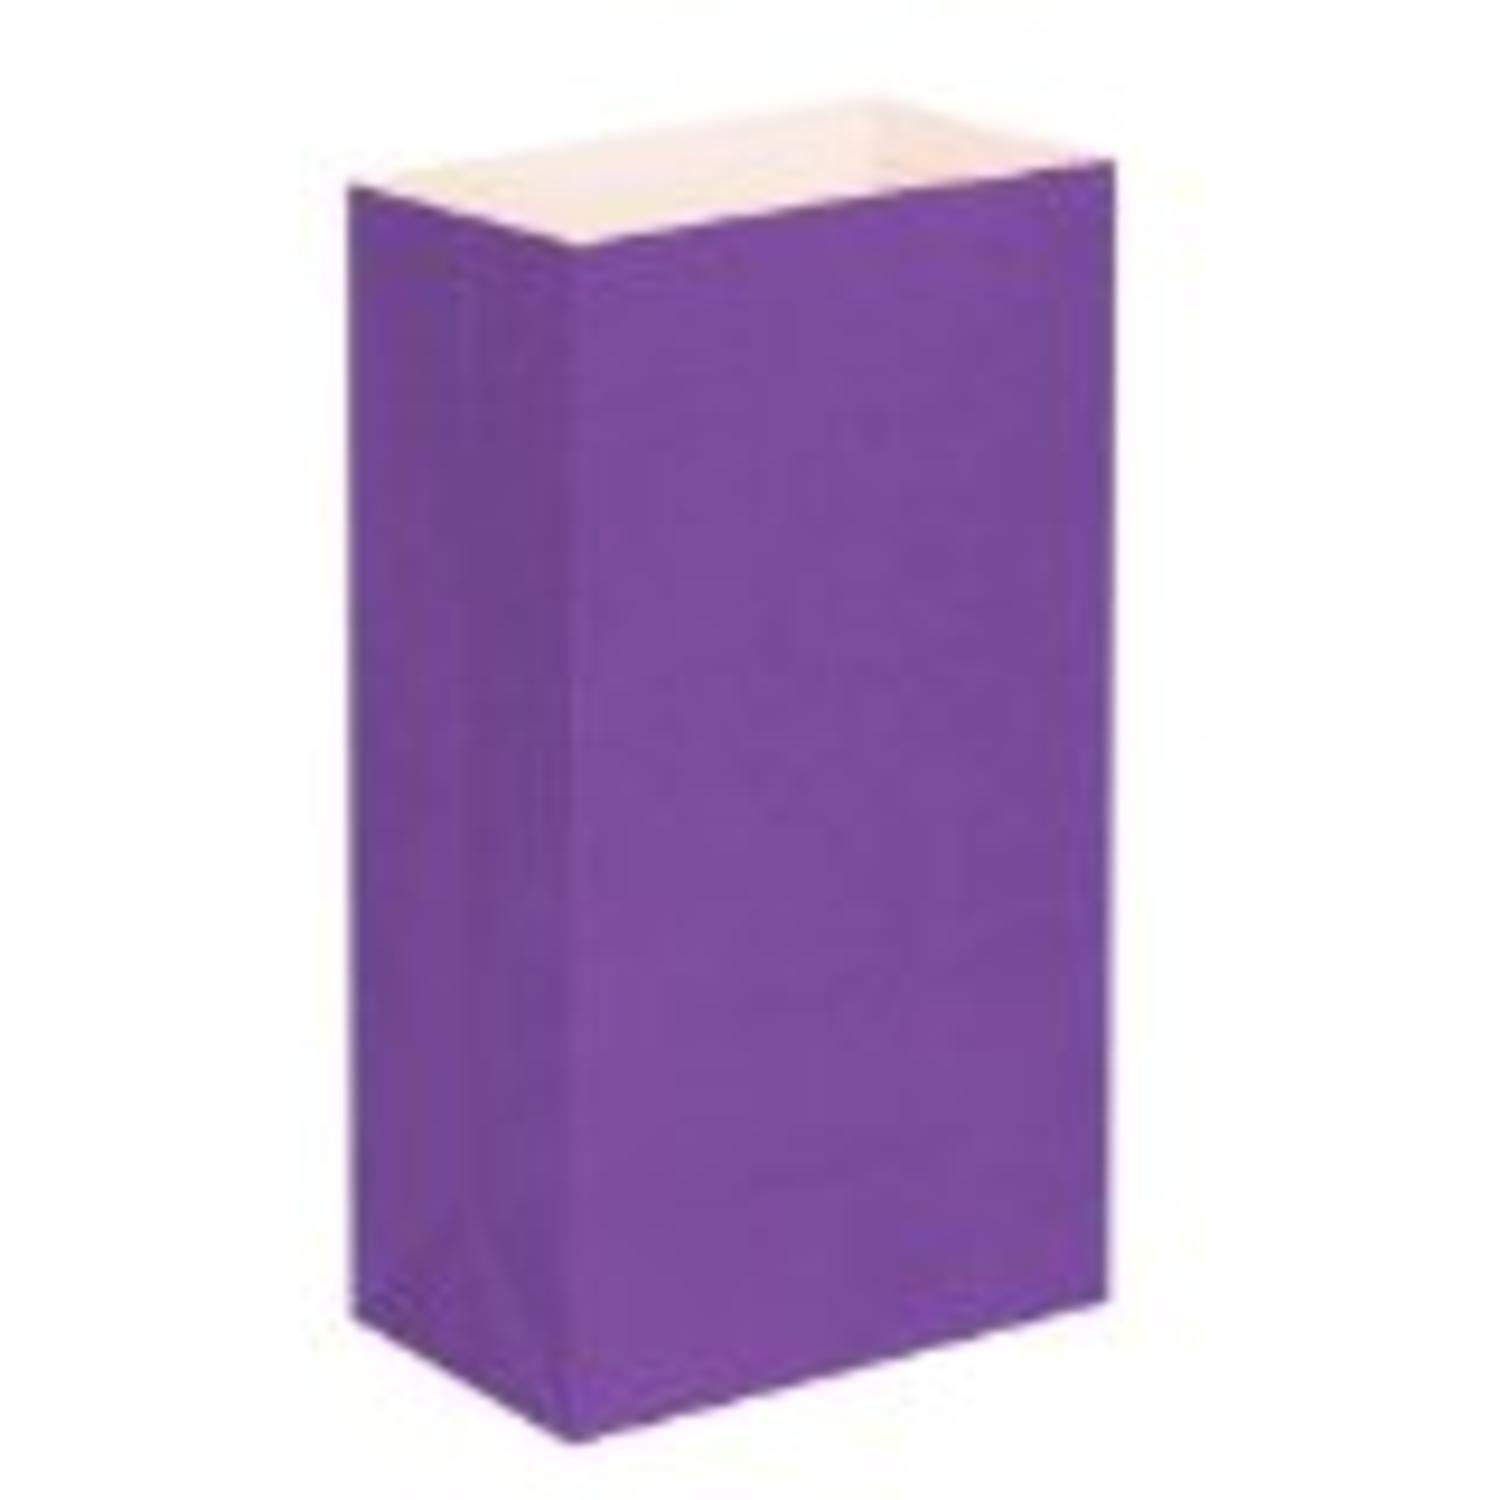 CC Home Furnishings Pack of 100 Traditional Purple Relay for Life Luminaria Bags 11''